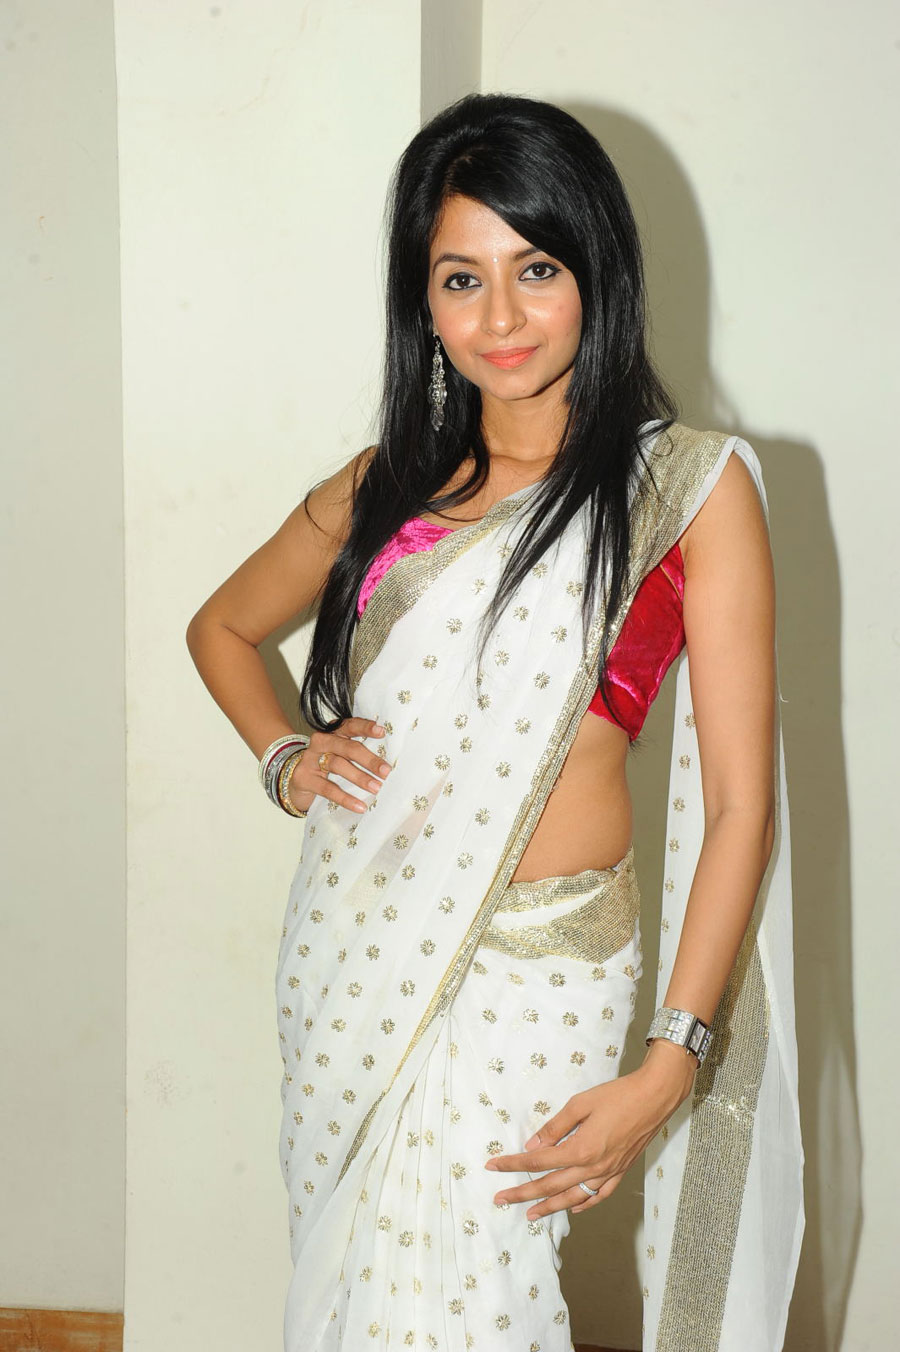 New Face Amrutha in Saree Photo Gallery Amruth15